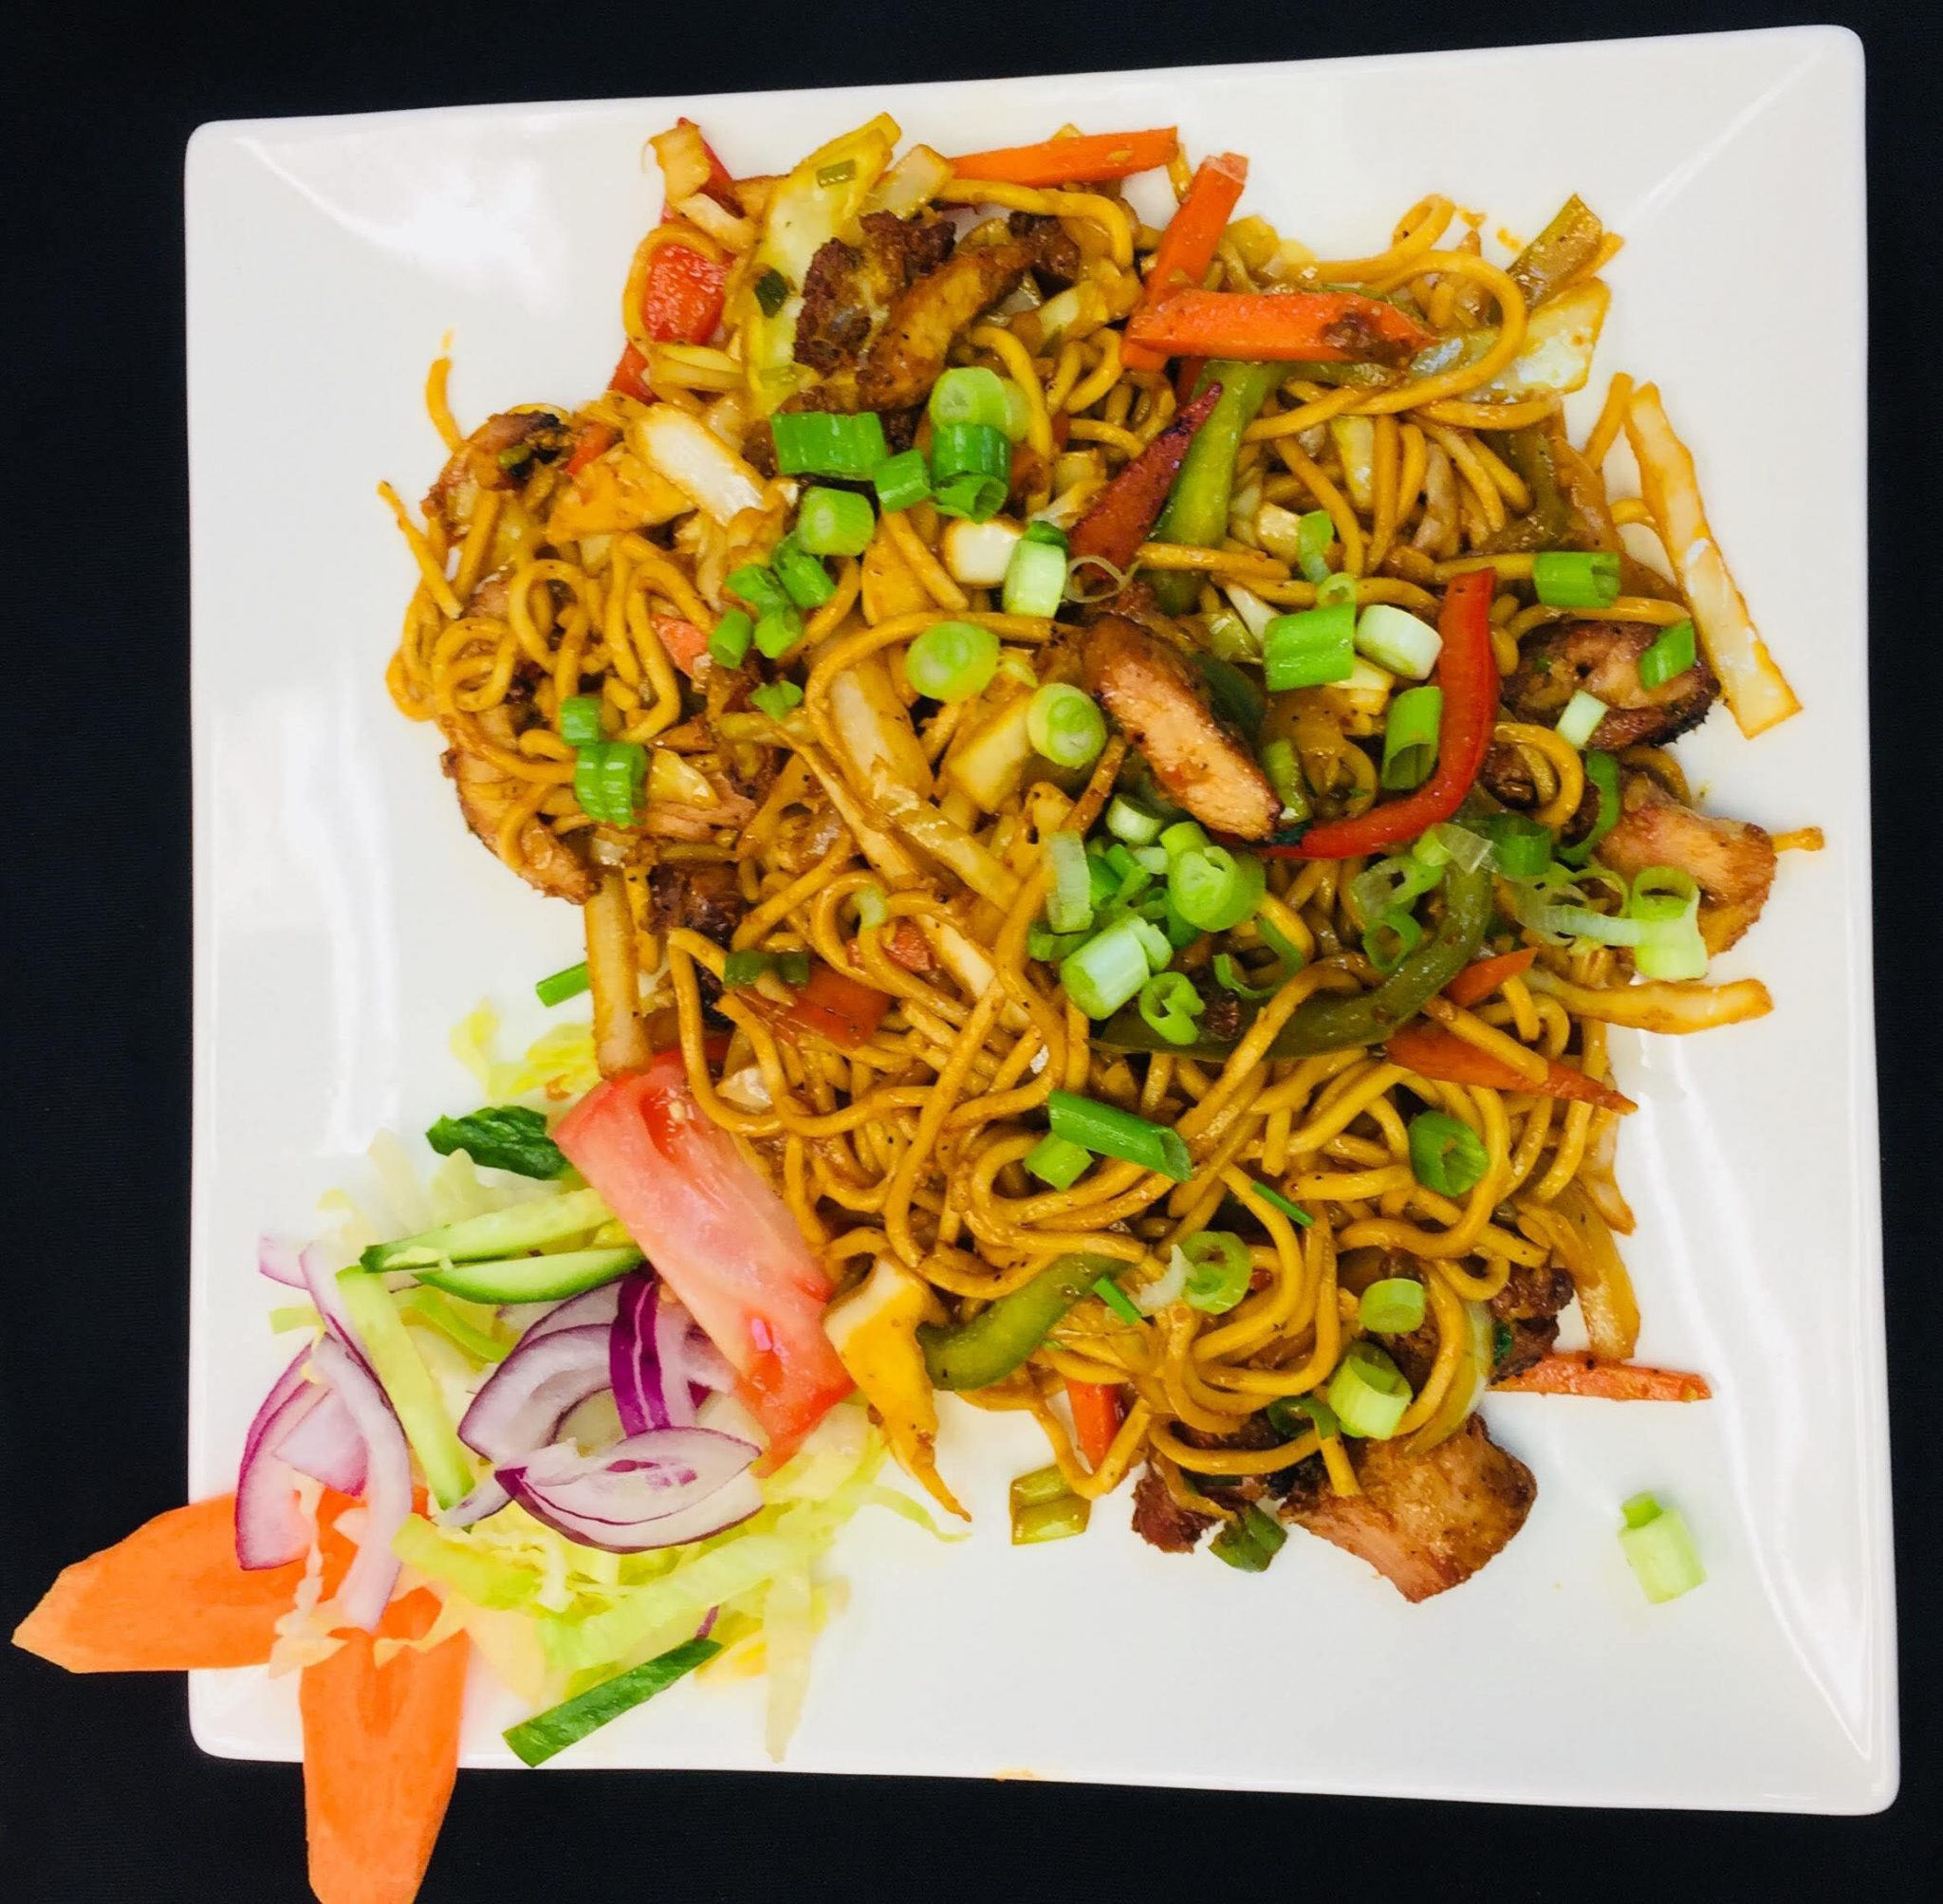 Everest Nepali Kitchen - 212 Grande Heights Dr Cary NC 27513